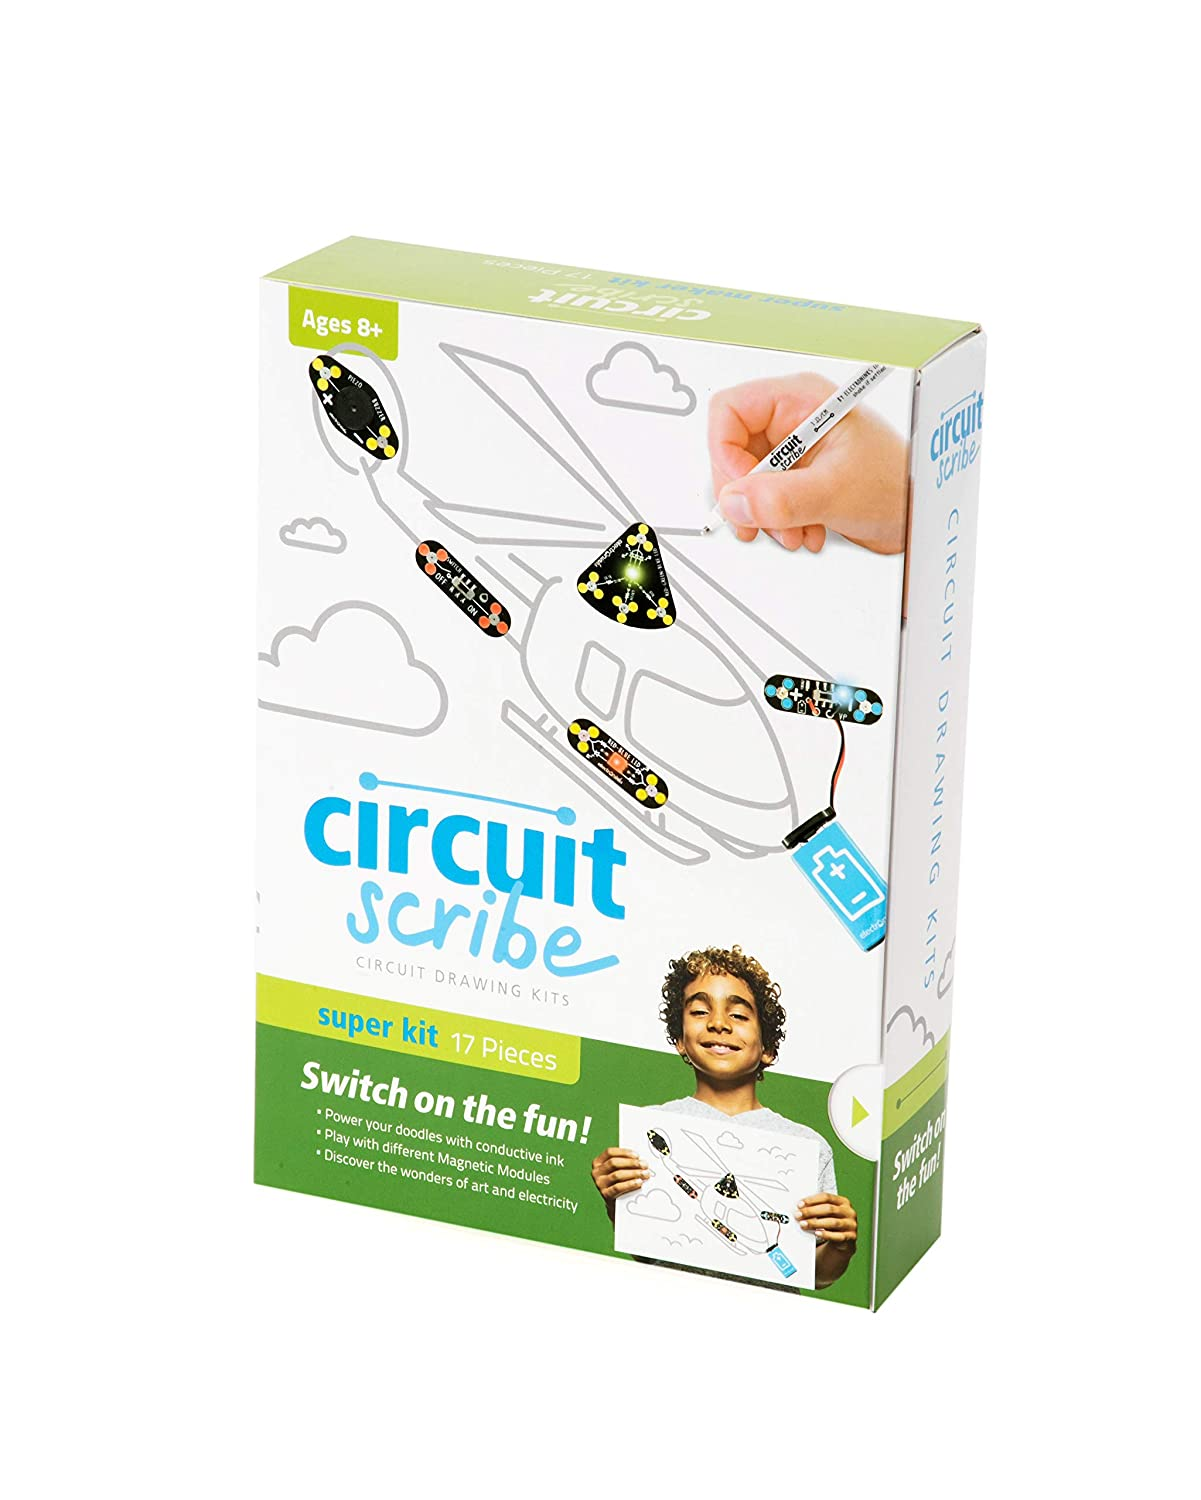 Circuit Scribe Maker Kit Includes Stem Workbook Conductive Silver Ink Pen And Everything You Need To Learn Explore Create Your Own This Comes With An Actual Printed Computer Board